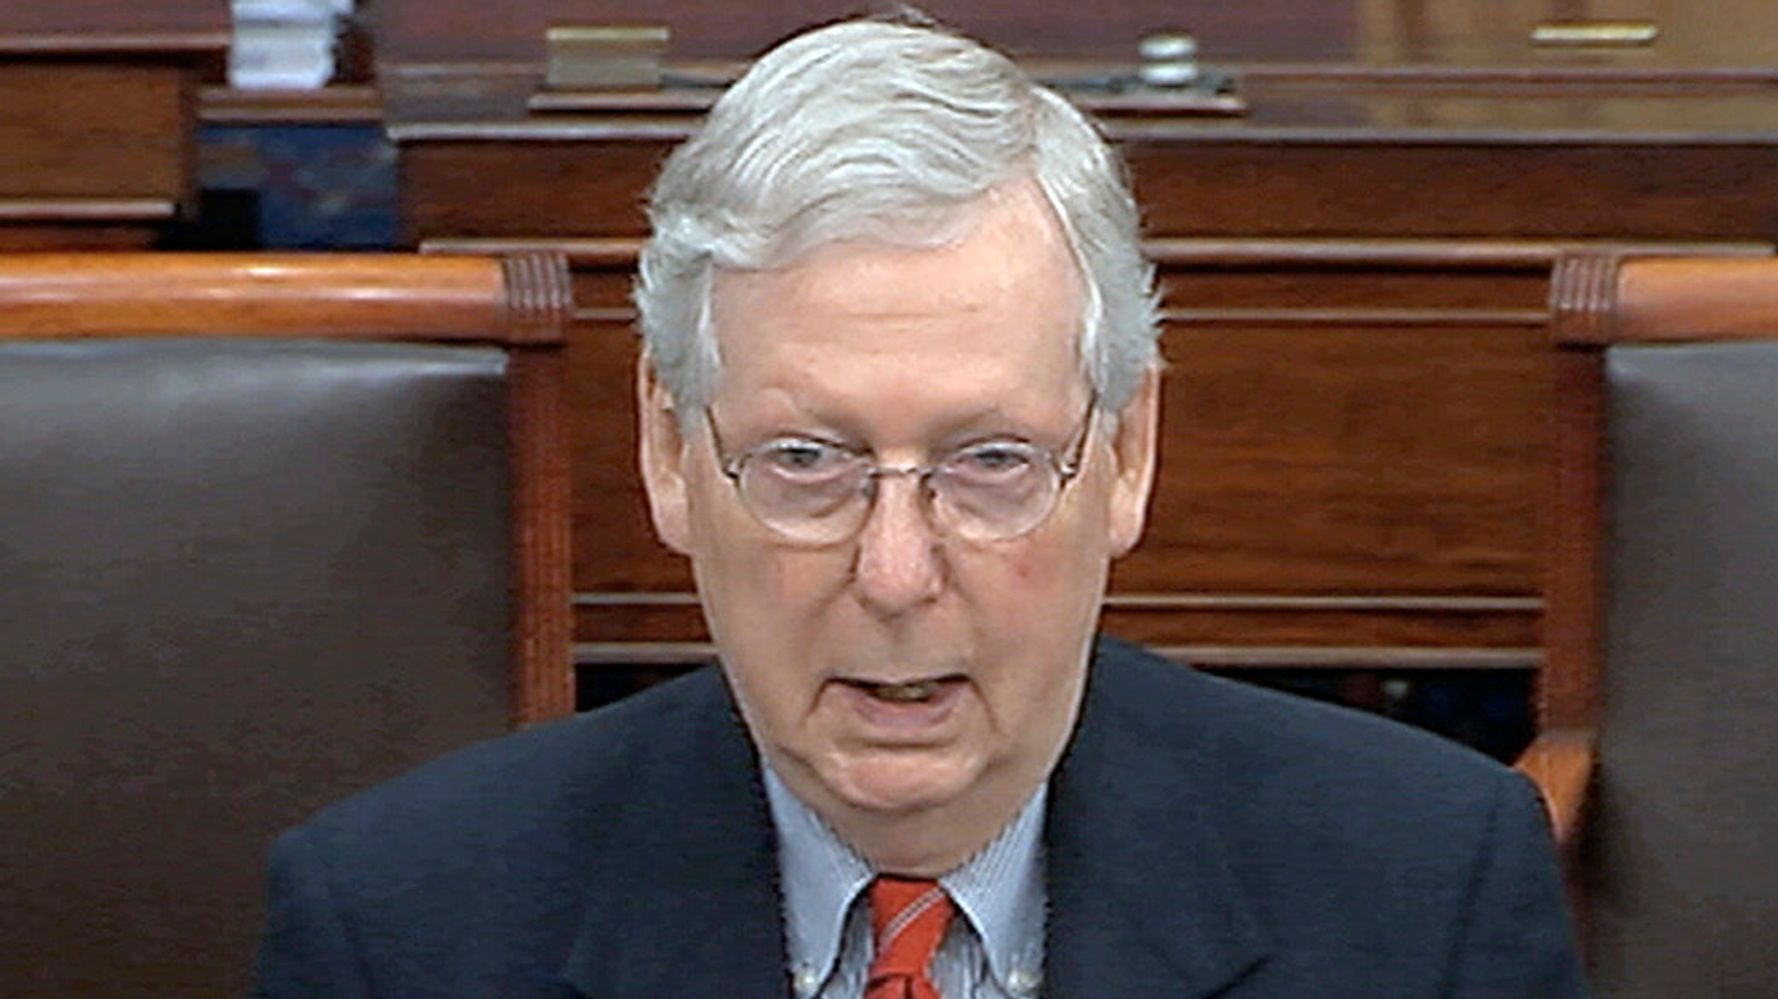 McConnell's Excuse For Trump's Botched Coronavirus Response Isn't Fooling Tweeters